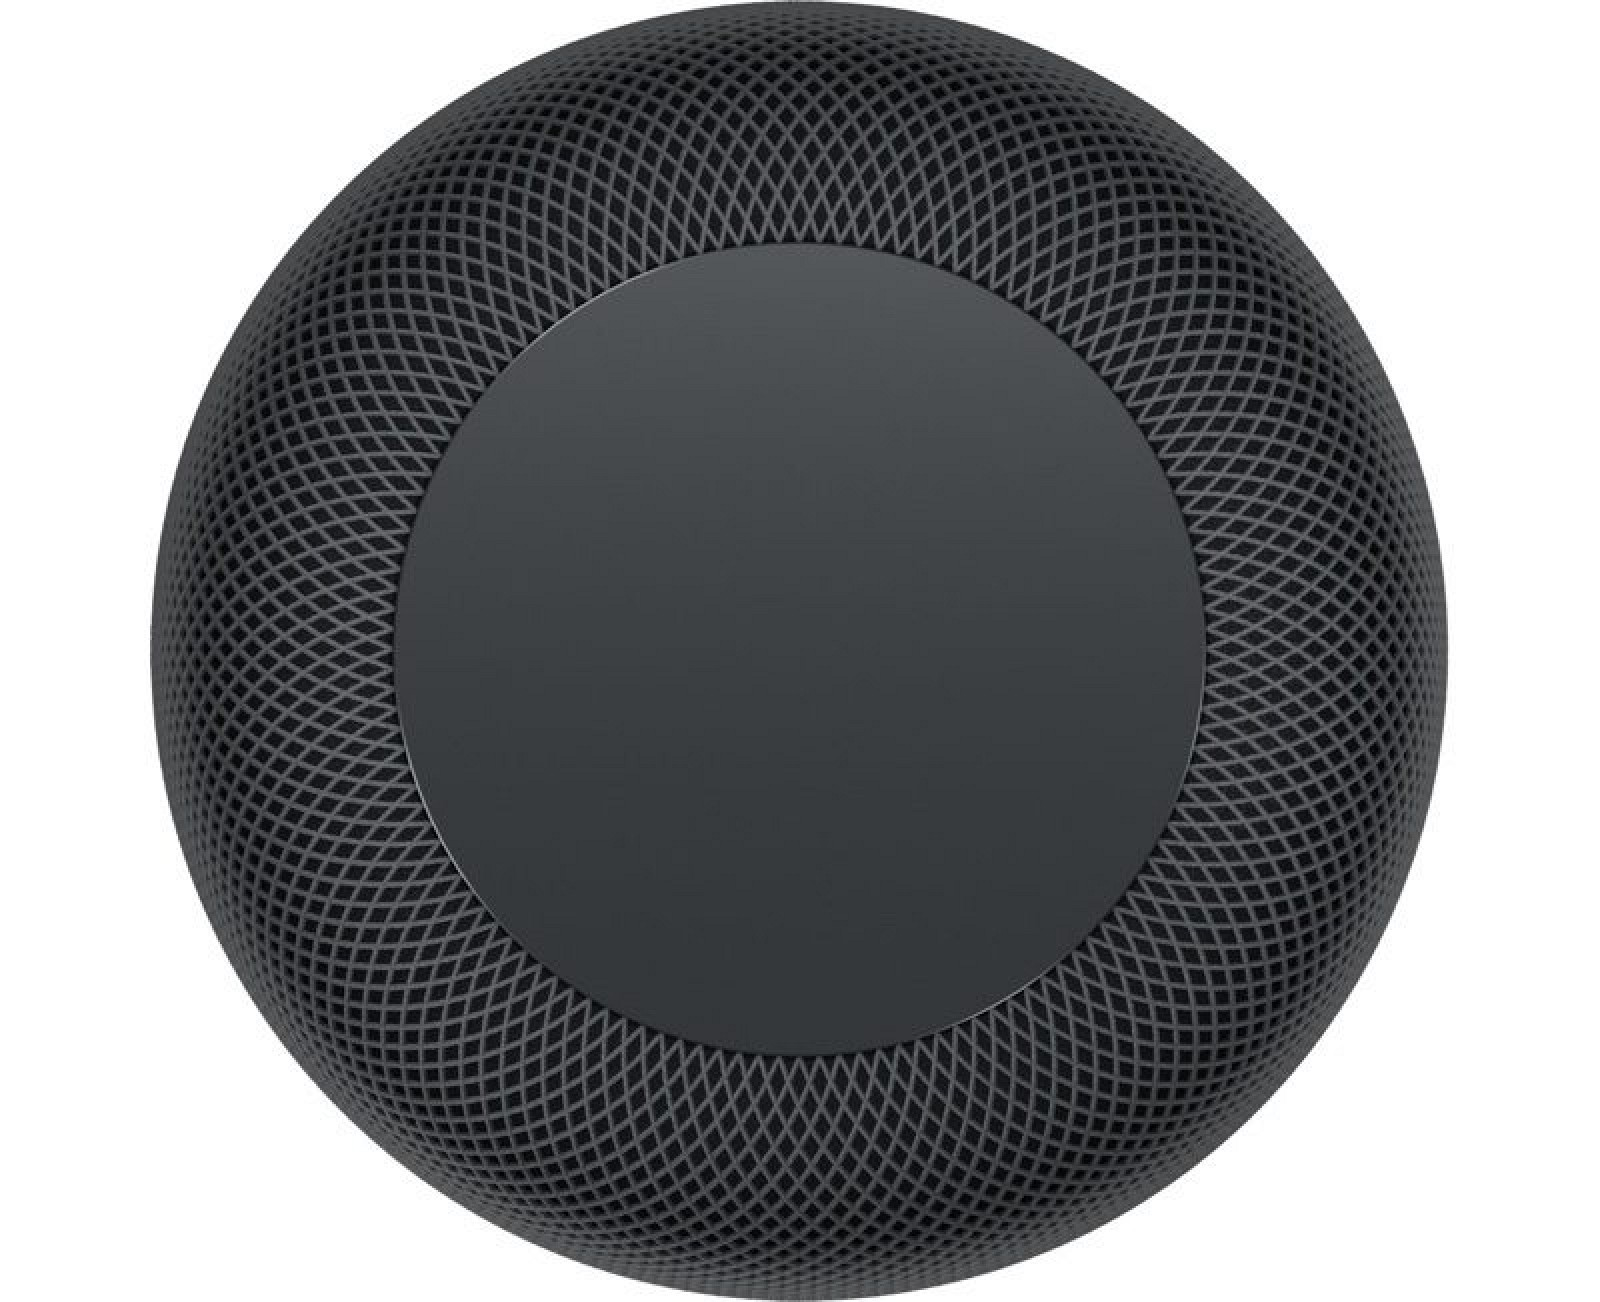 Photo of Apple's HomePod will be in stores on February 9